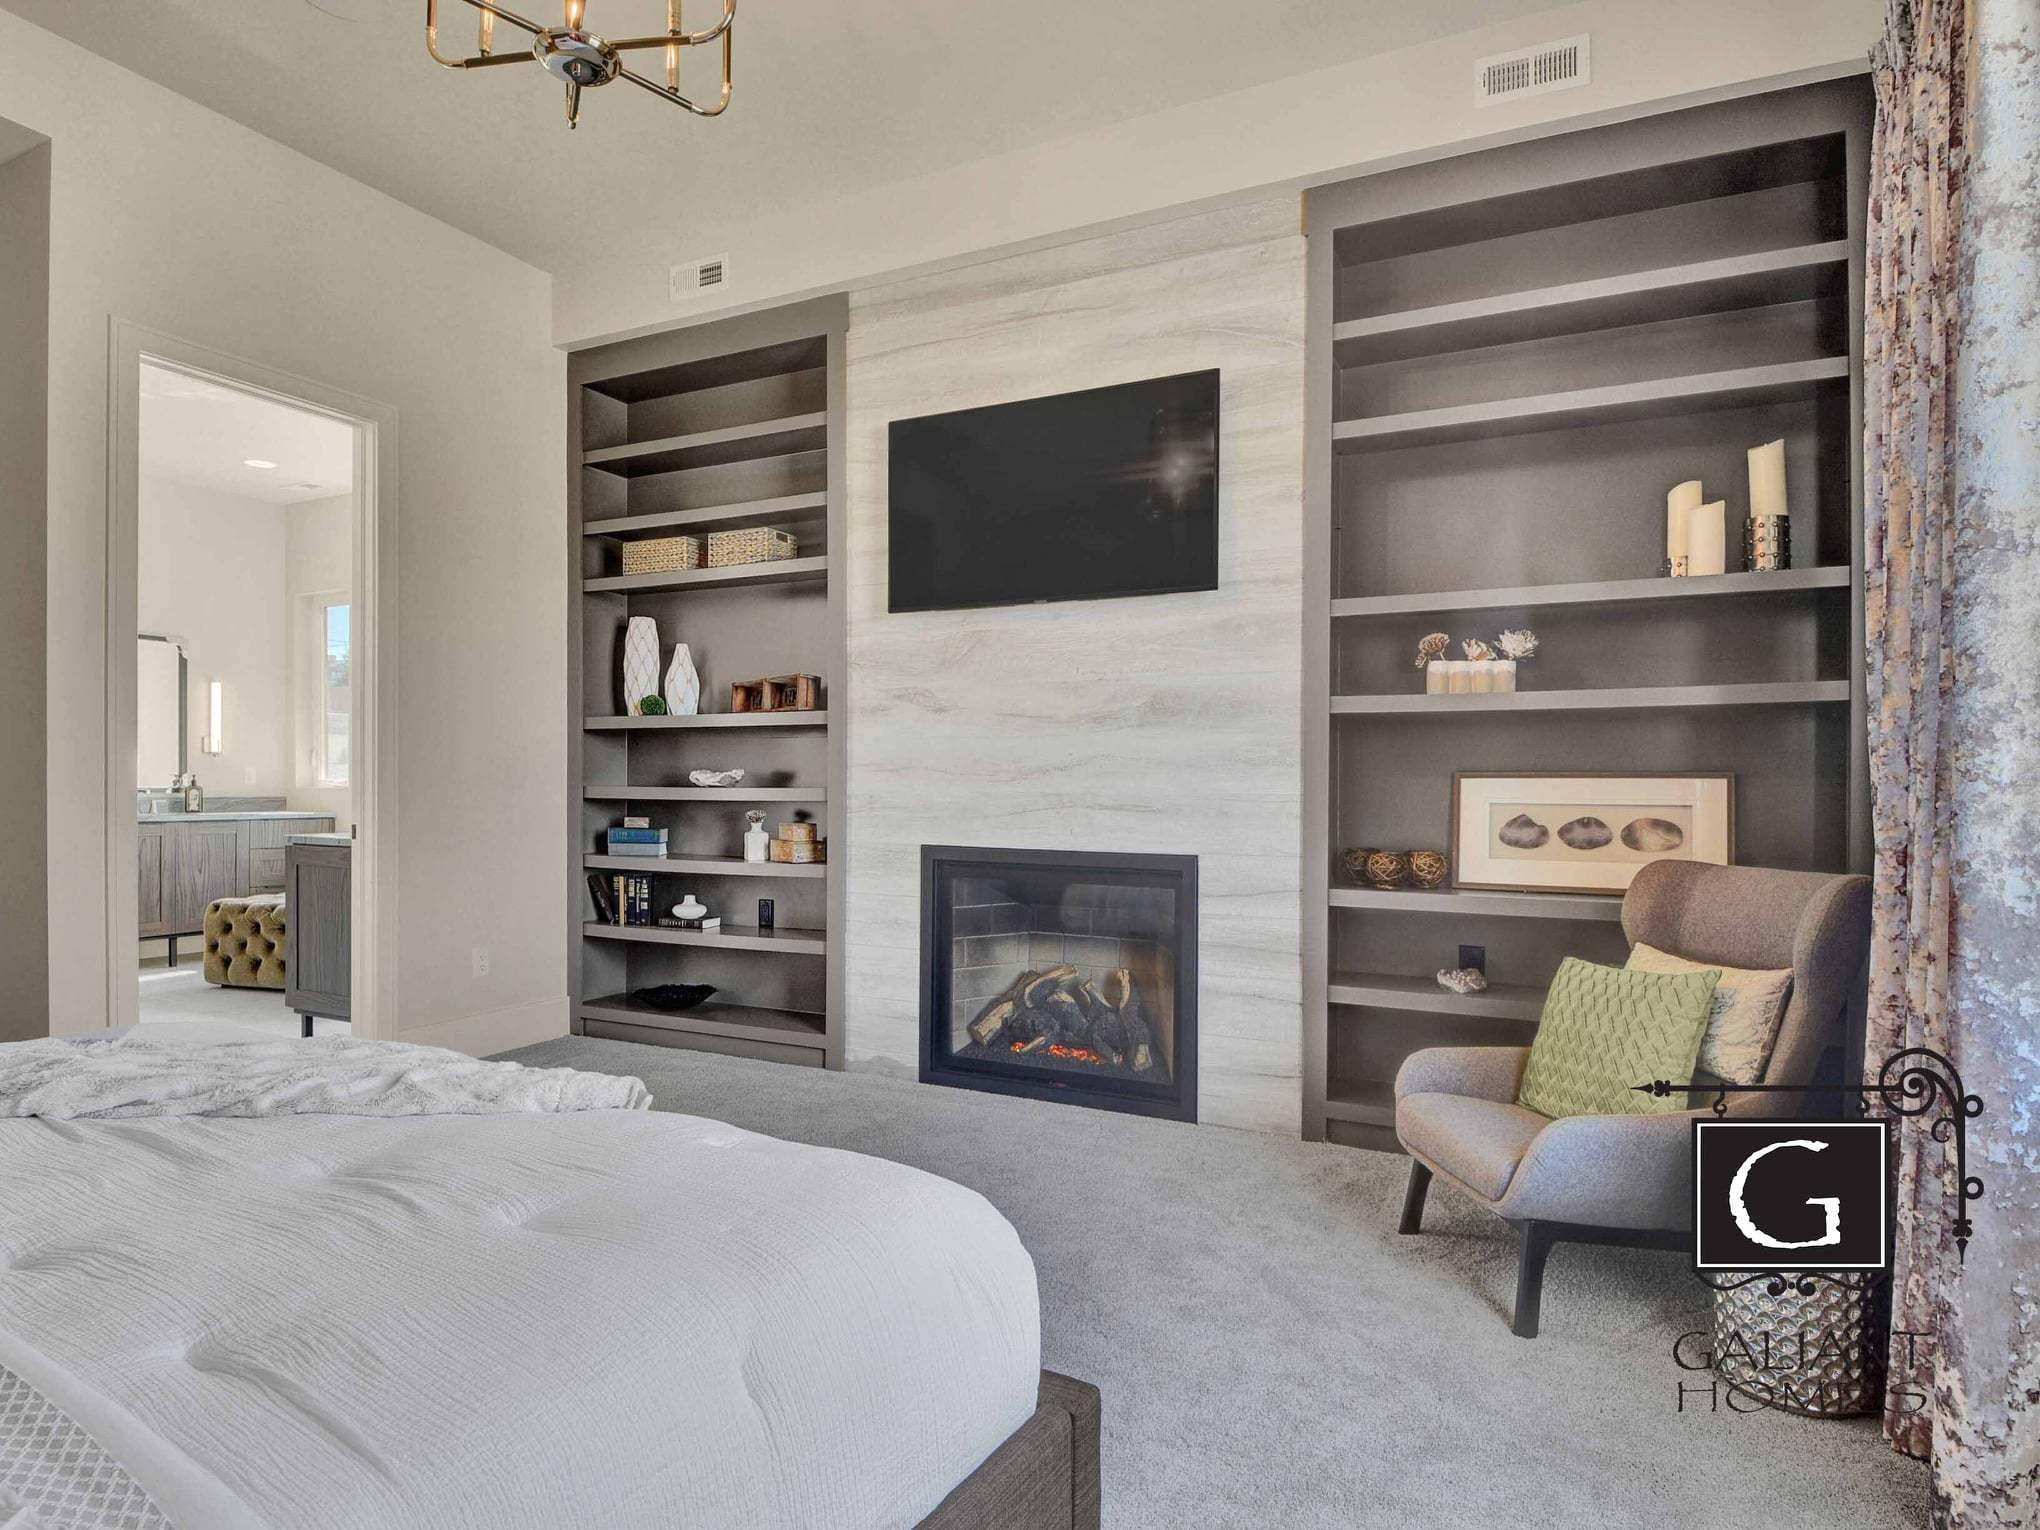 Bedroom featured in the Viking By Galiant Homes in Colorado Springs, CO